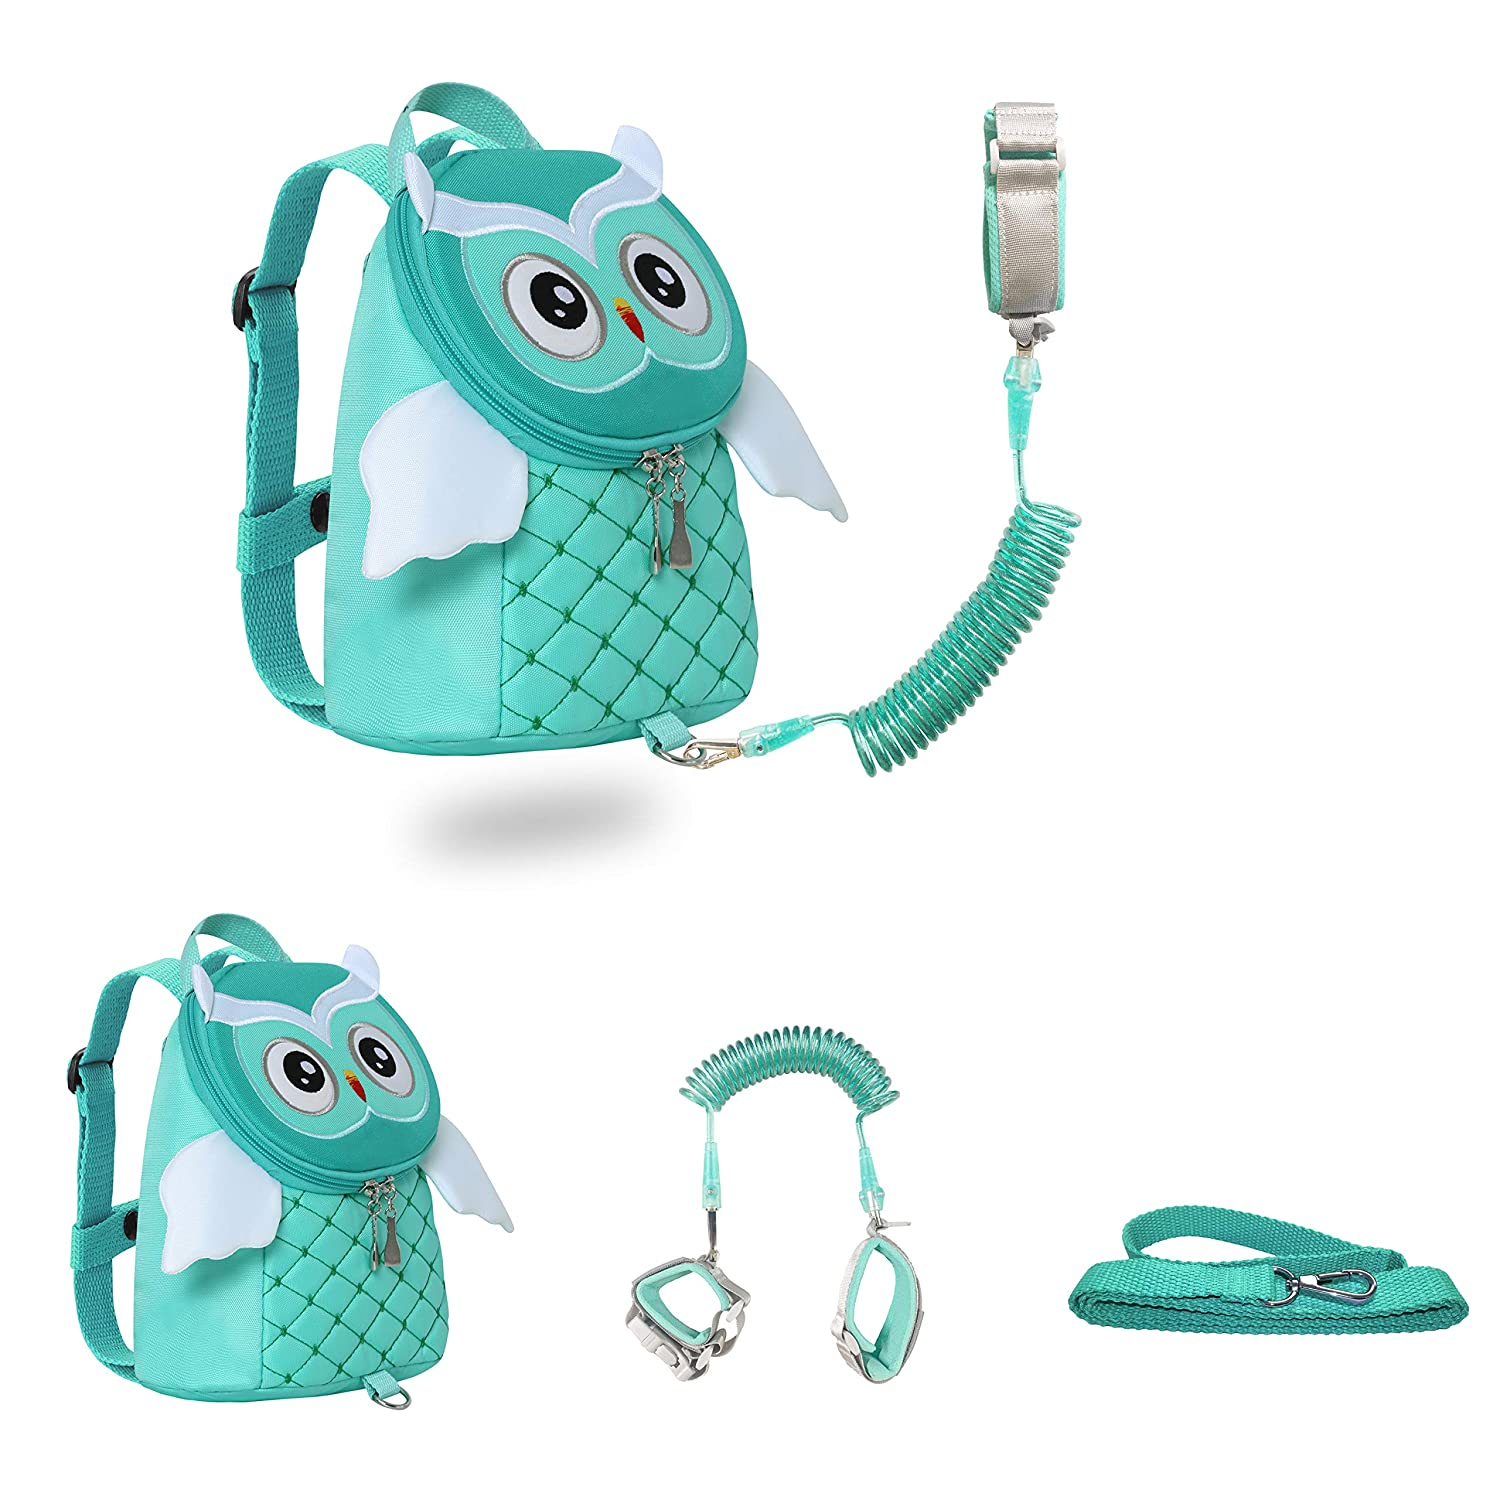 JIANBAO Owl Toddler Backpacks with Leashes Anti Lost Wrist Link for 1.5 to 3 Years Kids Girls Boys Safety (Owl, Green)